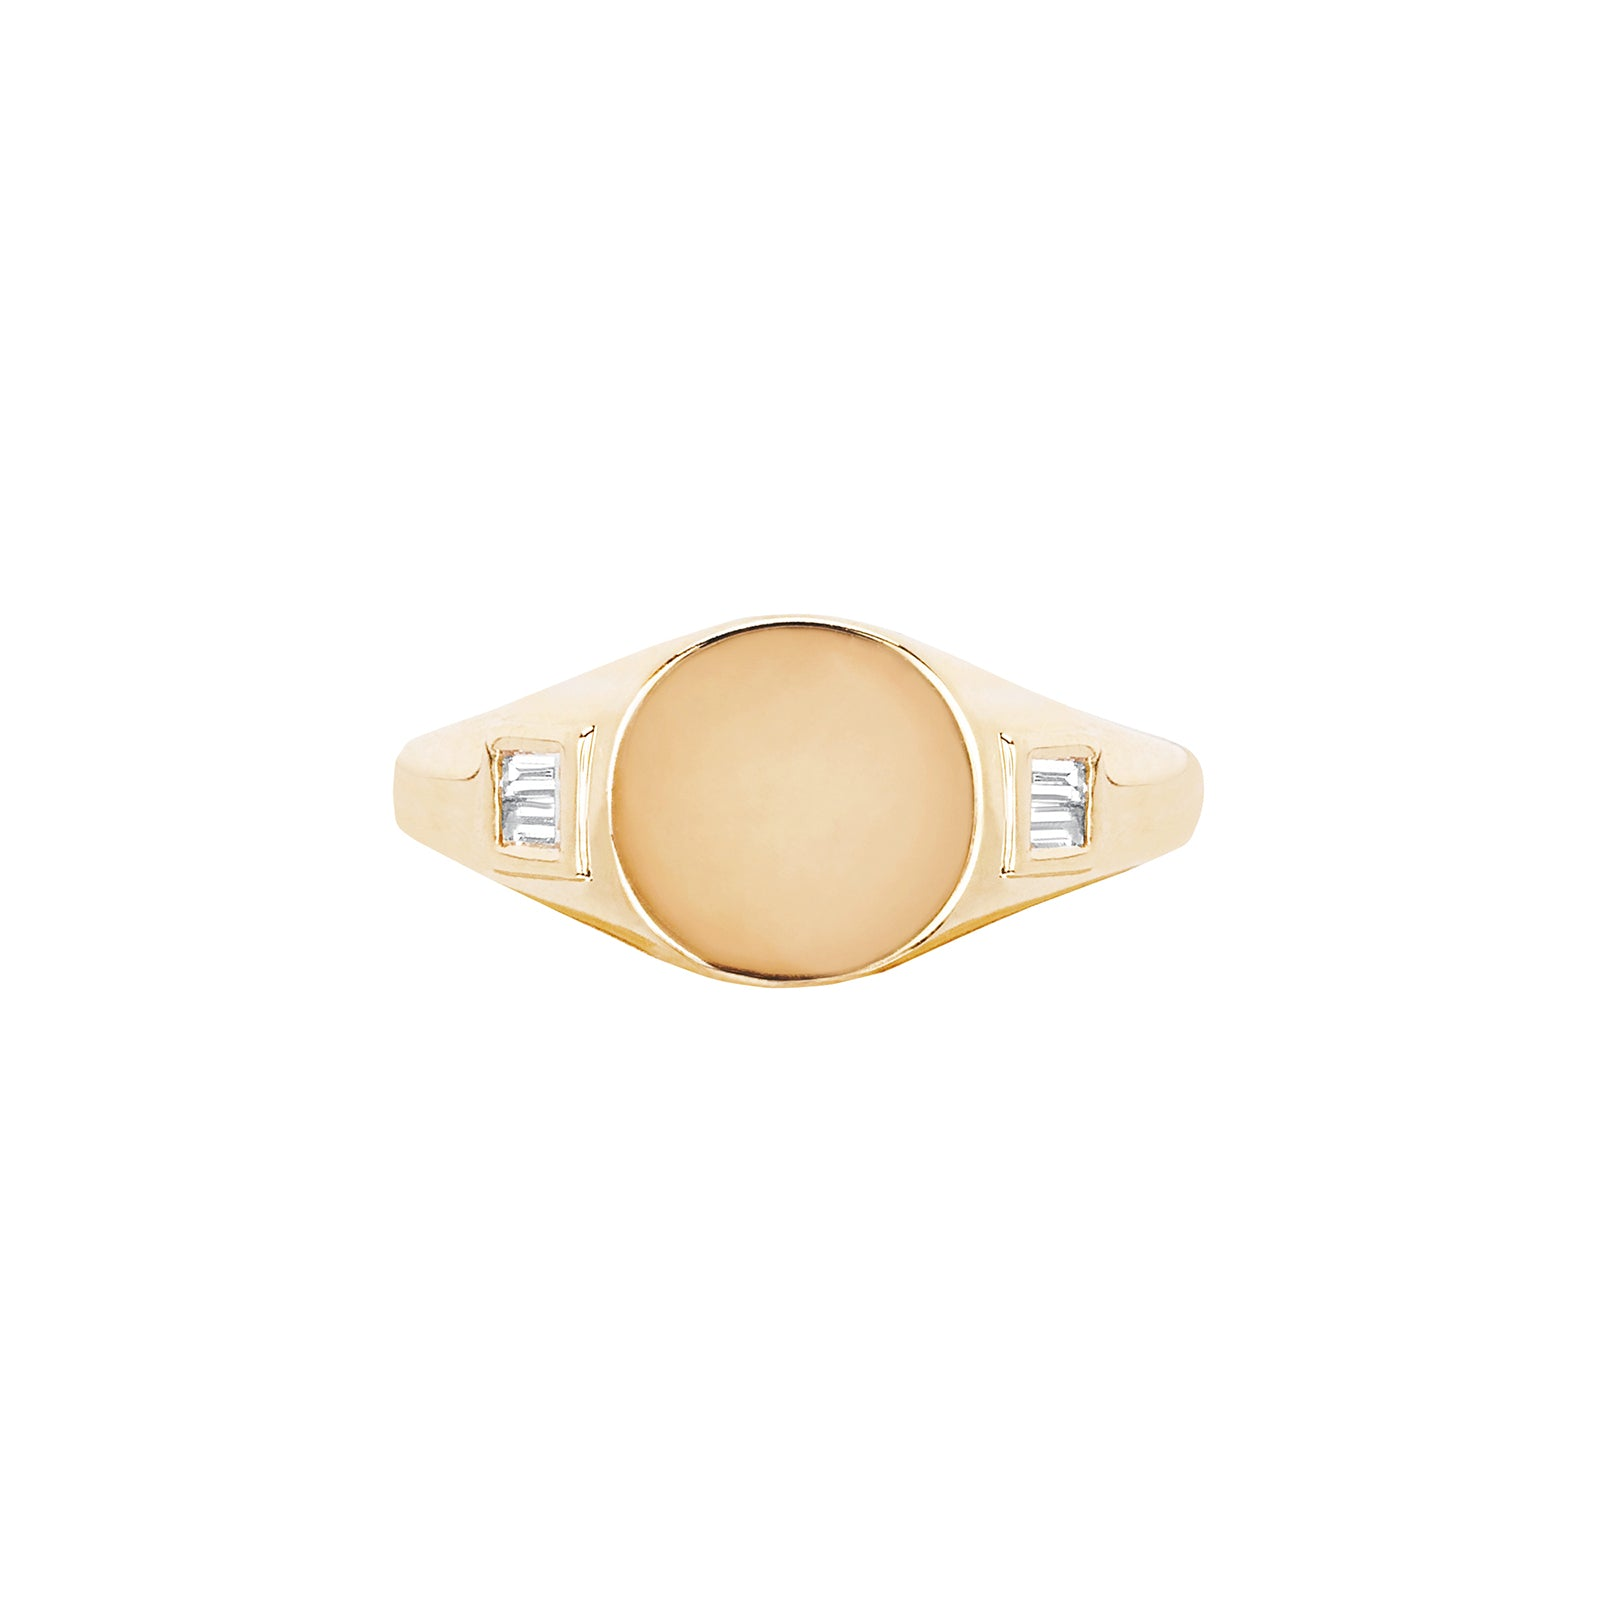 EF Collection Baguette Signet Ring - Yellow Gold - Rings - Broken English Jewelry